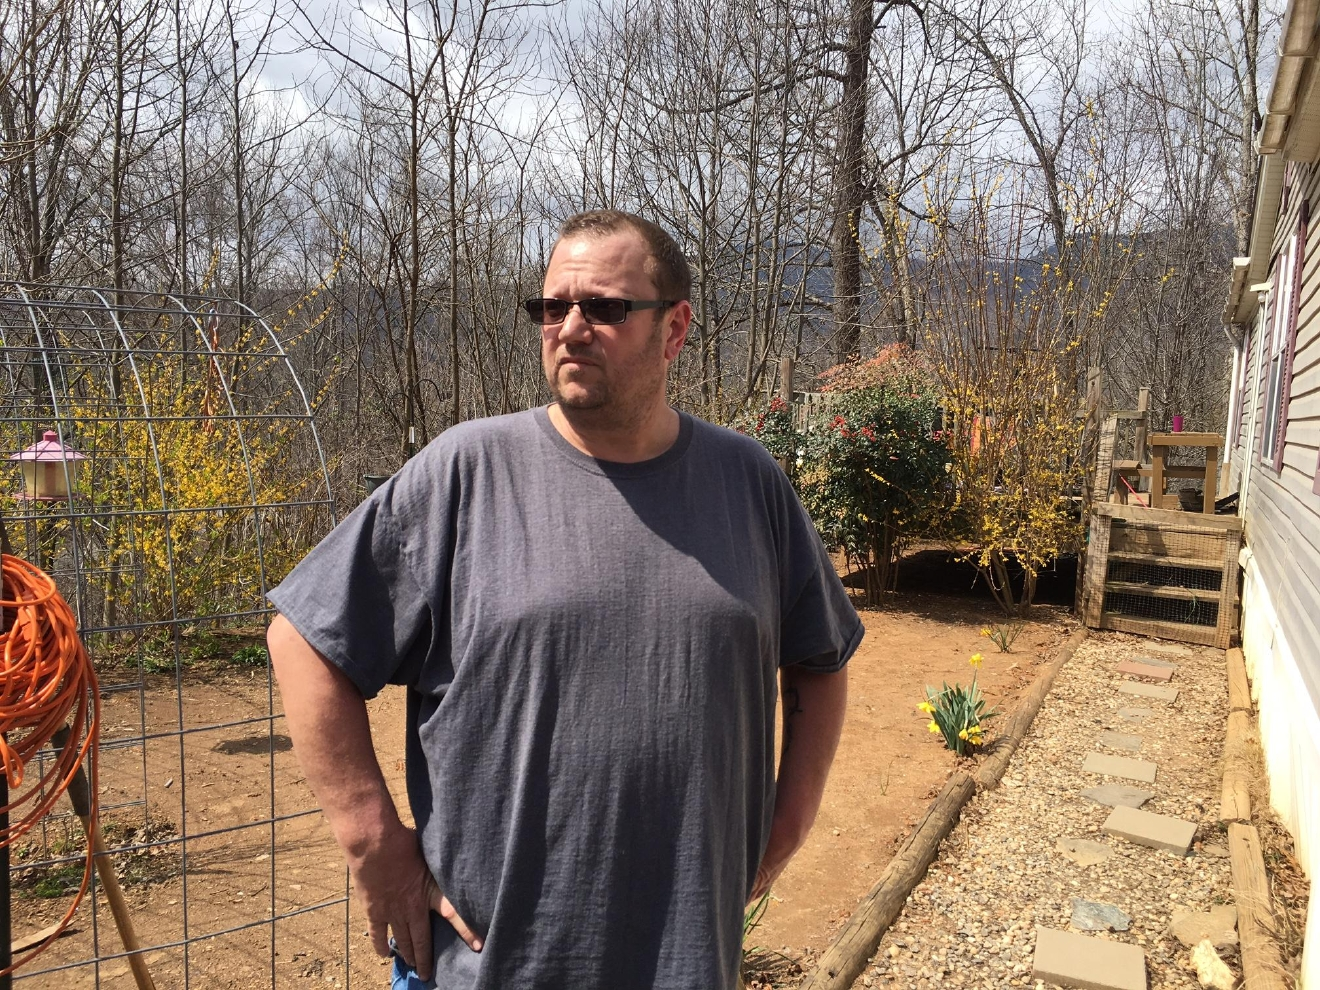 Jeff Guelcher, who is charged with felony animal abuse after shooting his neighbor's dog, said he had no choice after the dog threatened his chickens. (Photo credit: WLOS staff)